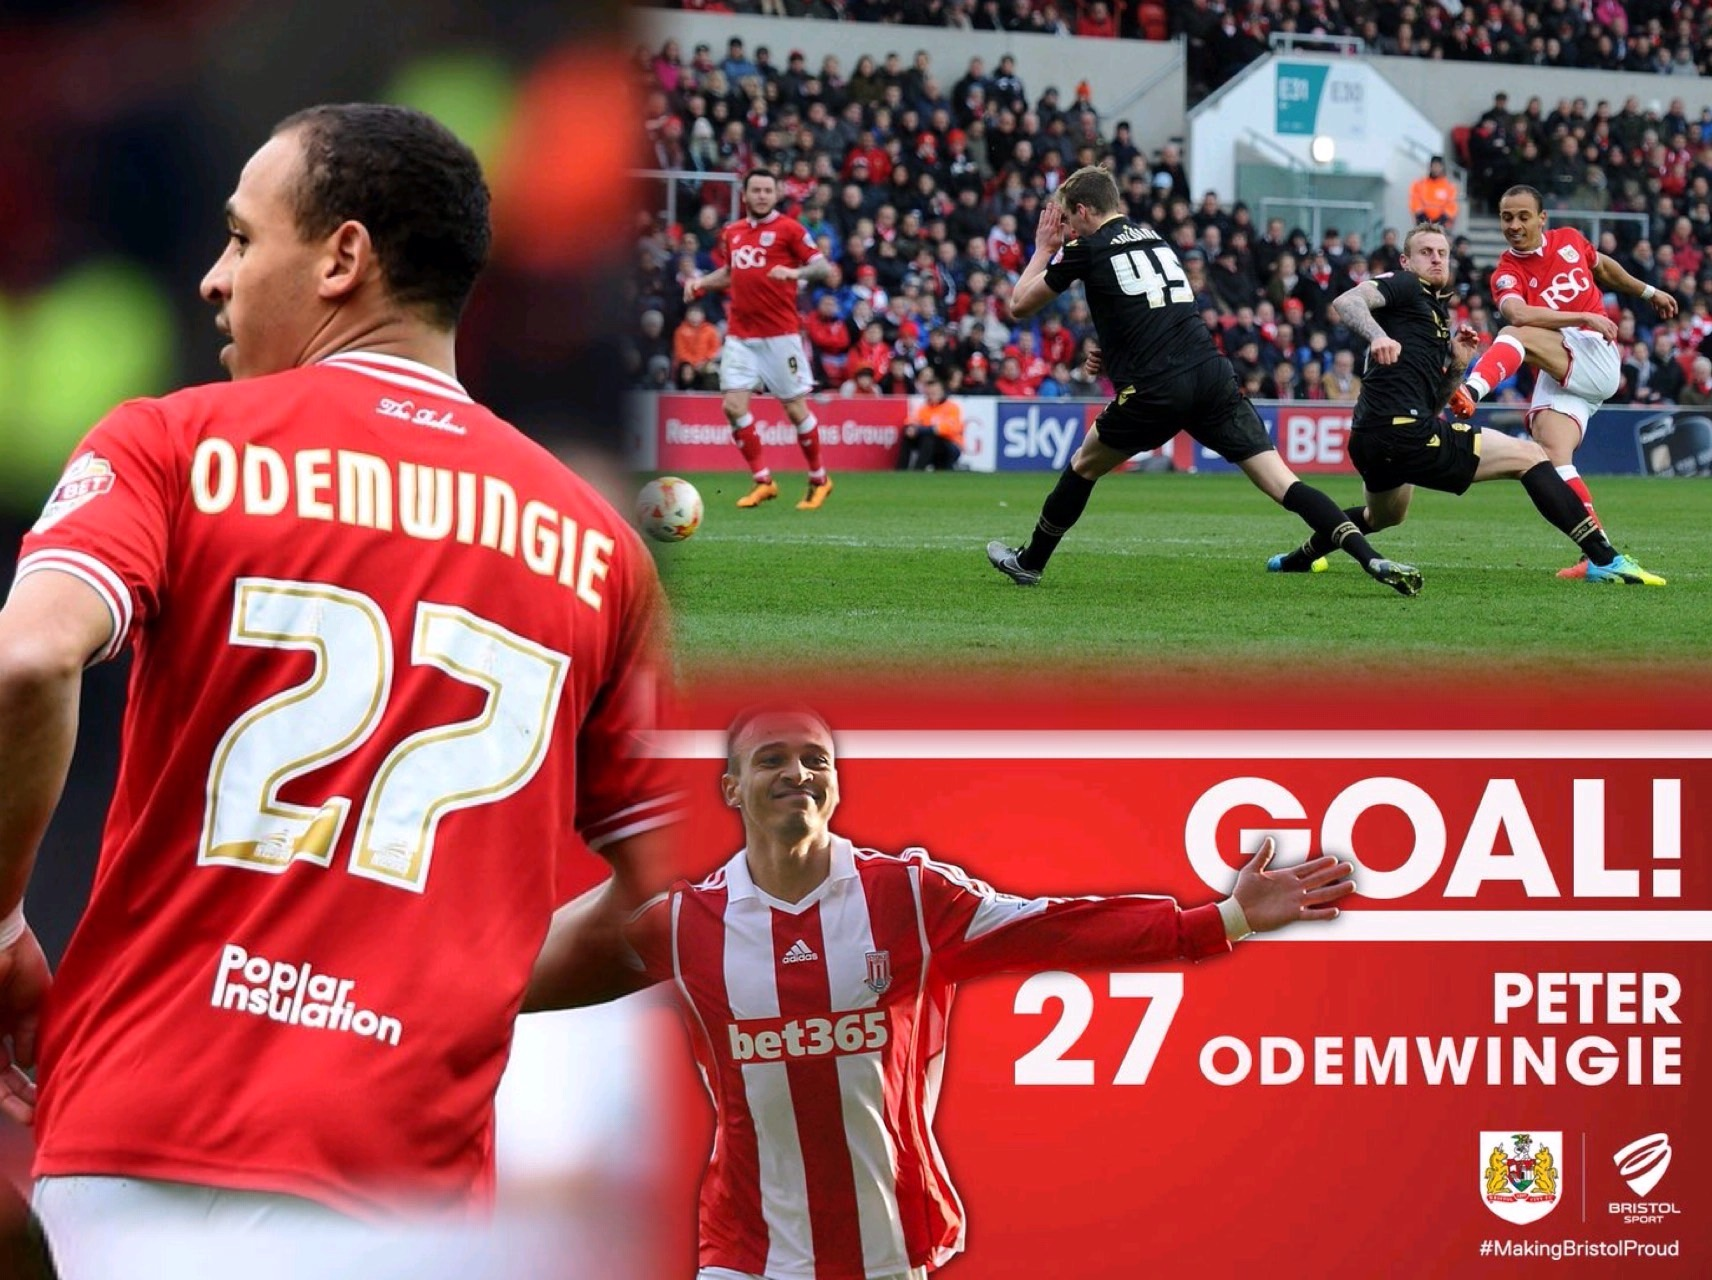 Odemwingie Celebrates Home Debut Goal For Bristol City